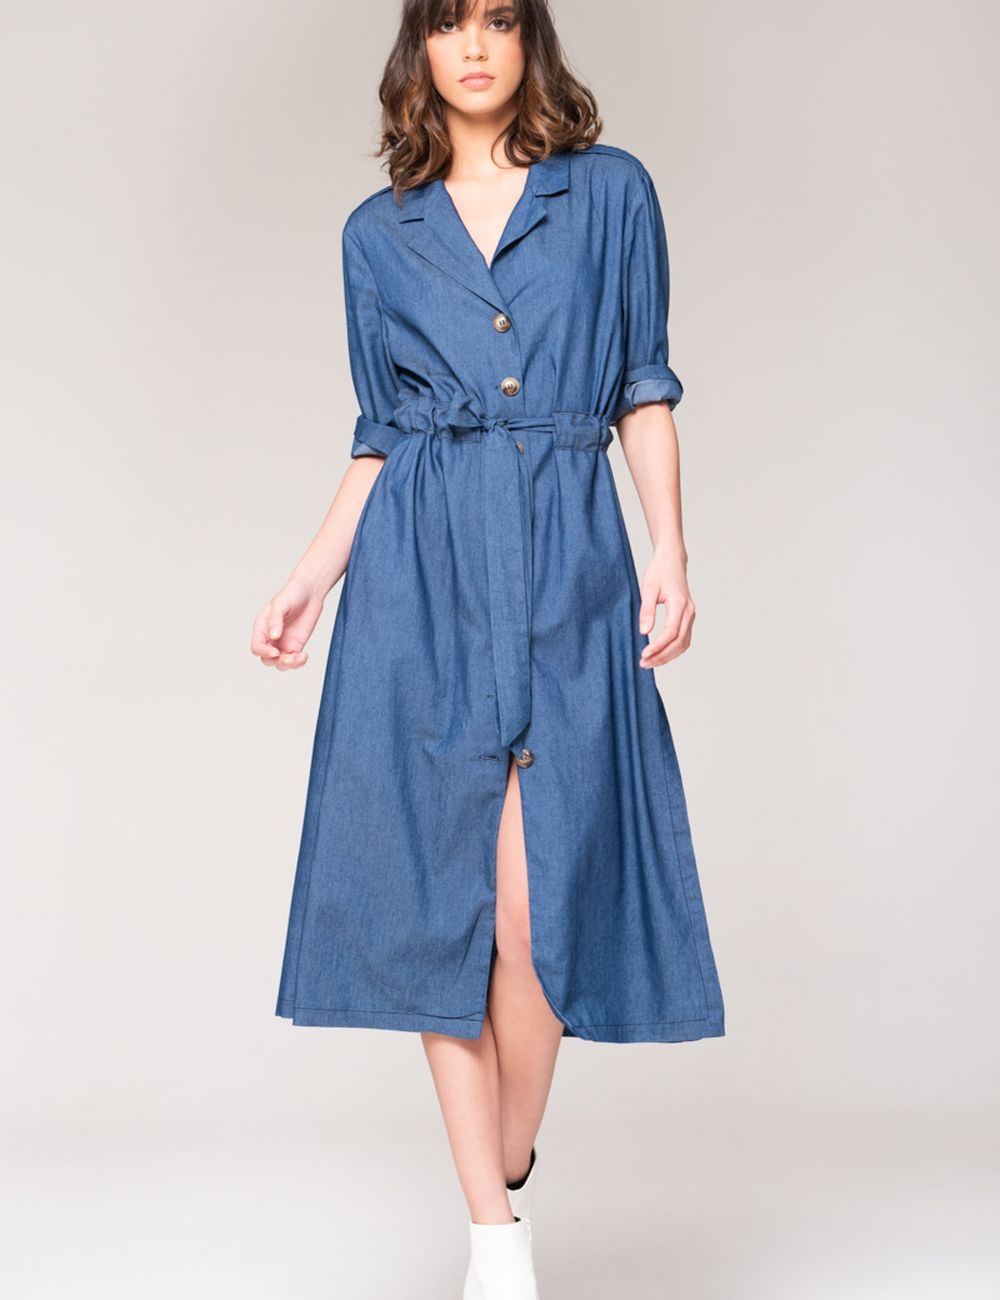 MAXIVESTIDO DENIM